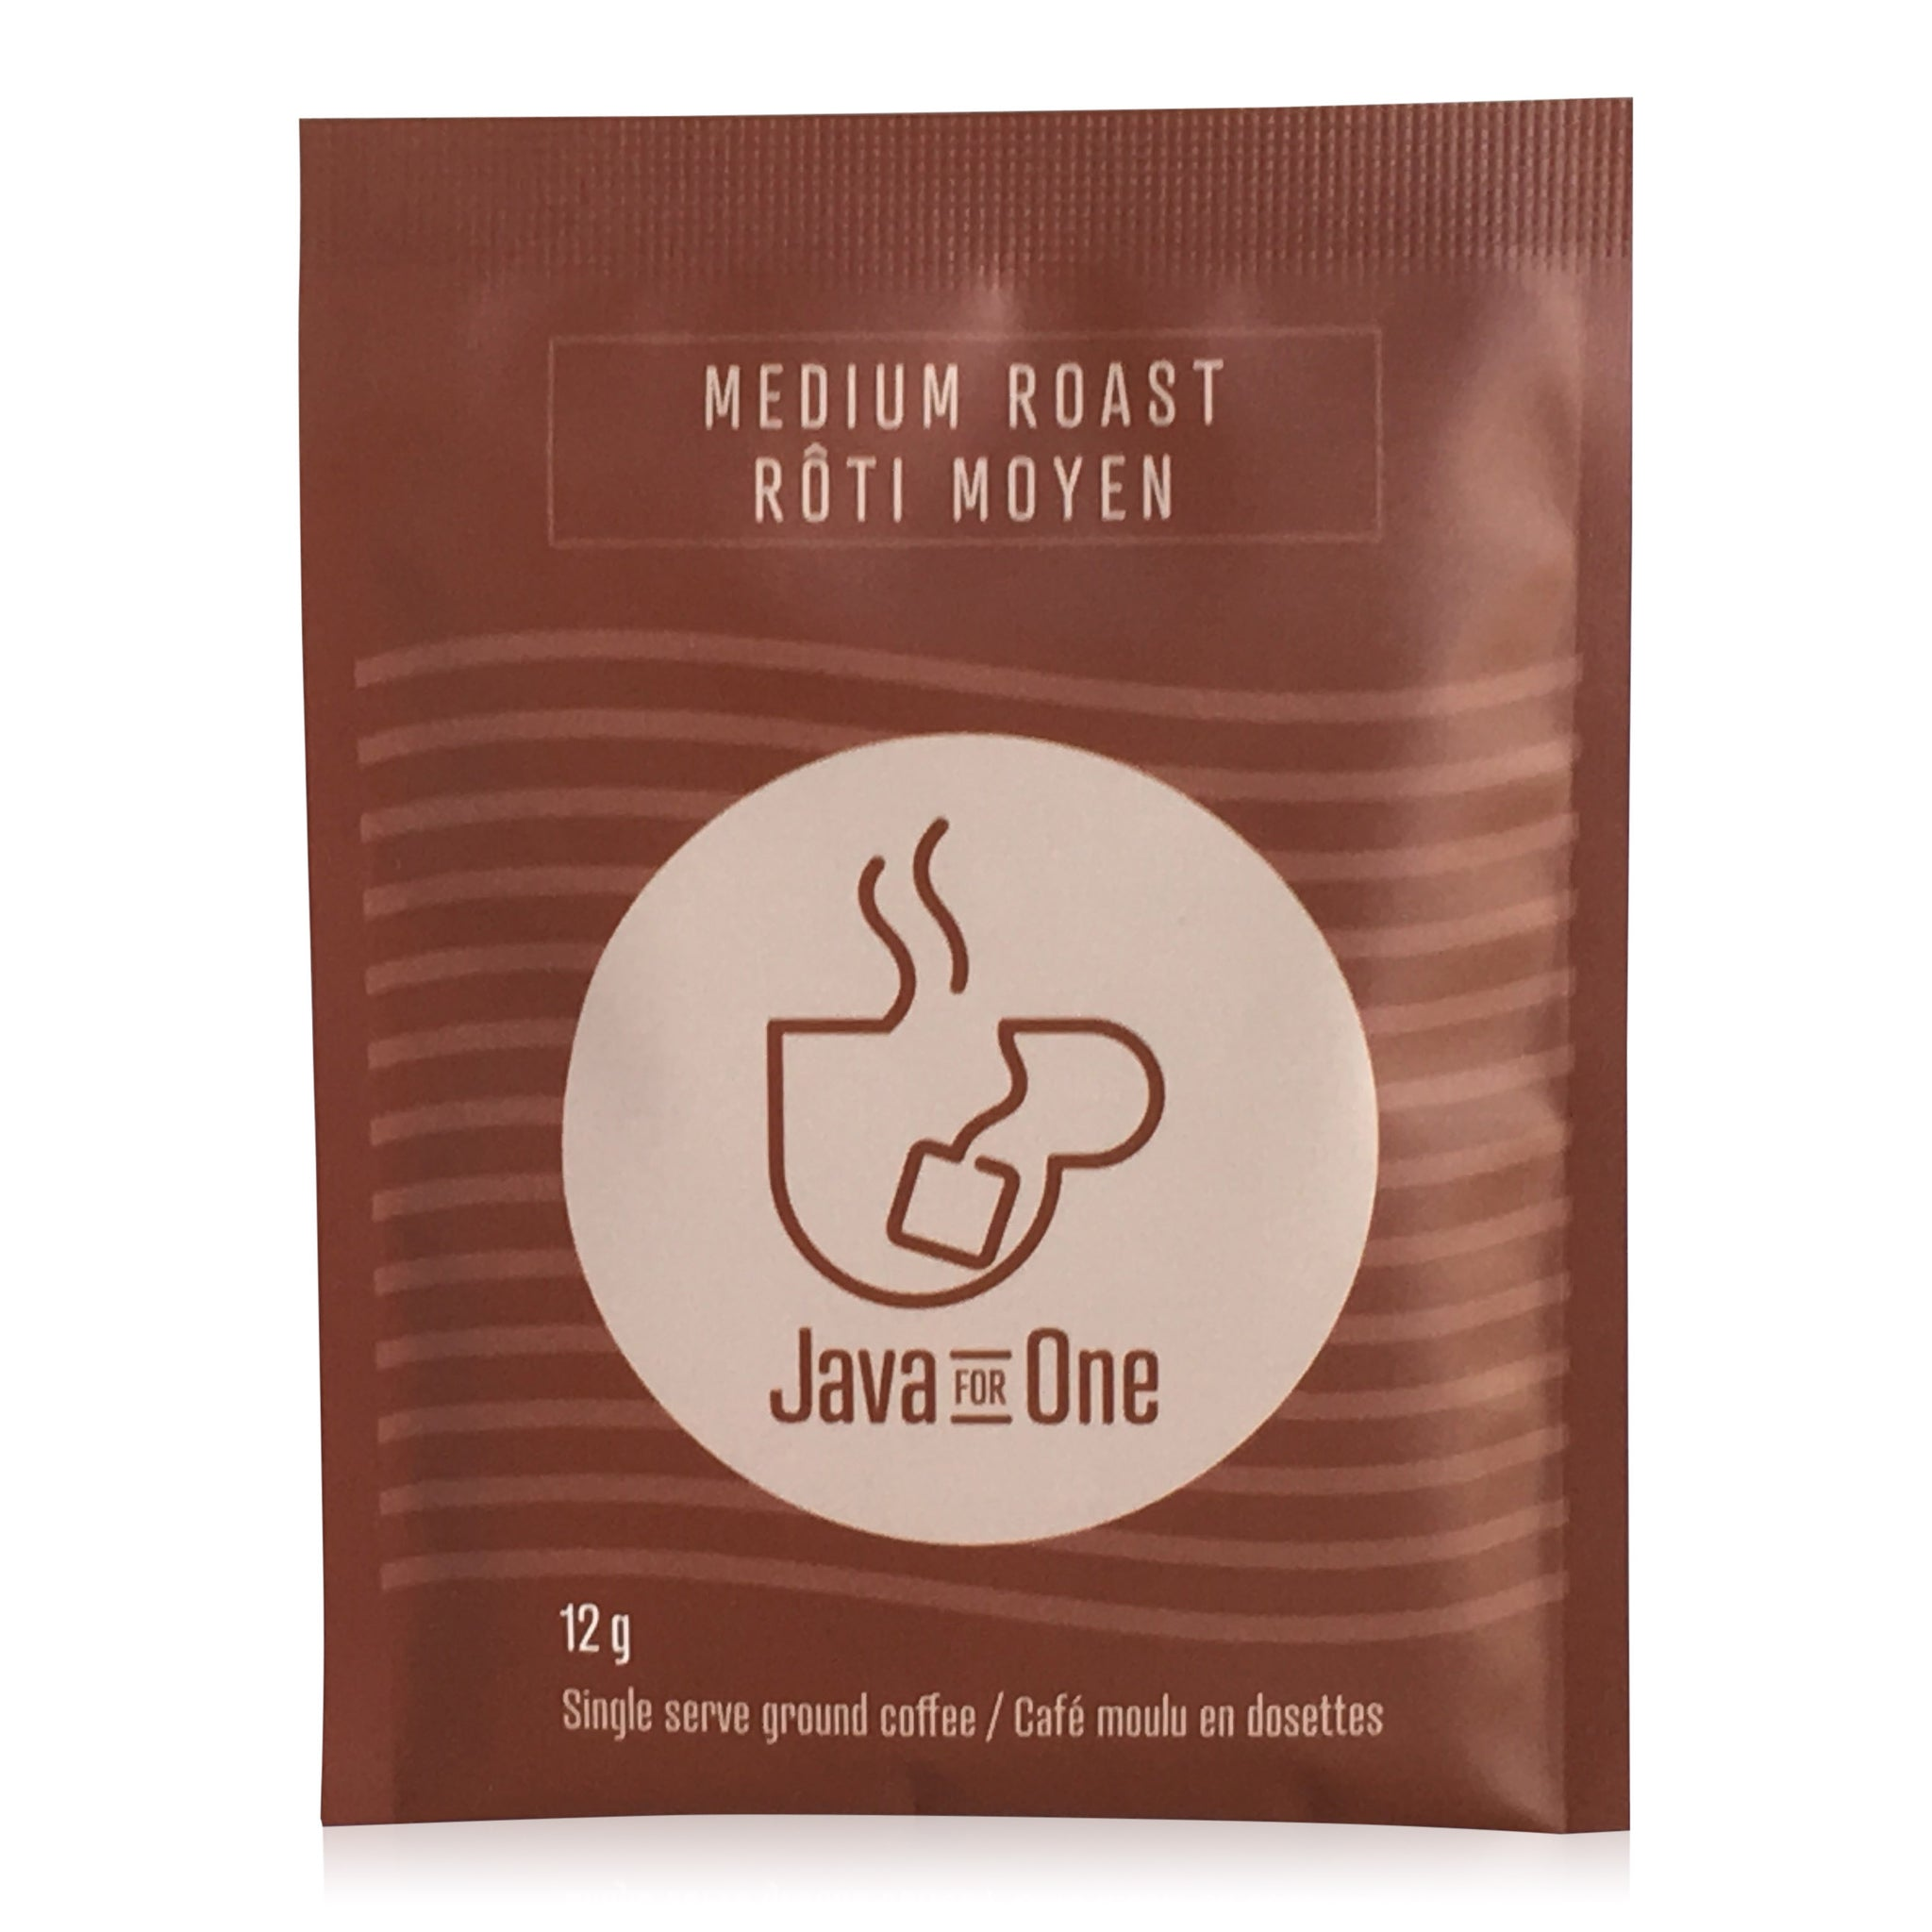 Medium Roast - Java For One